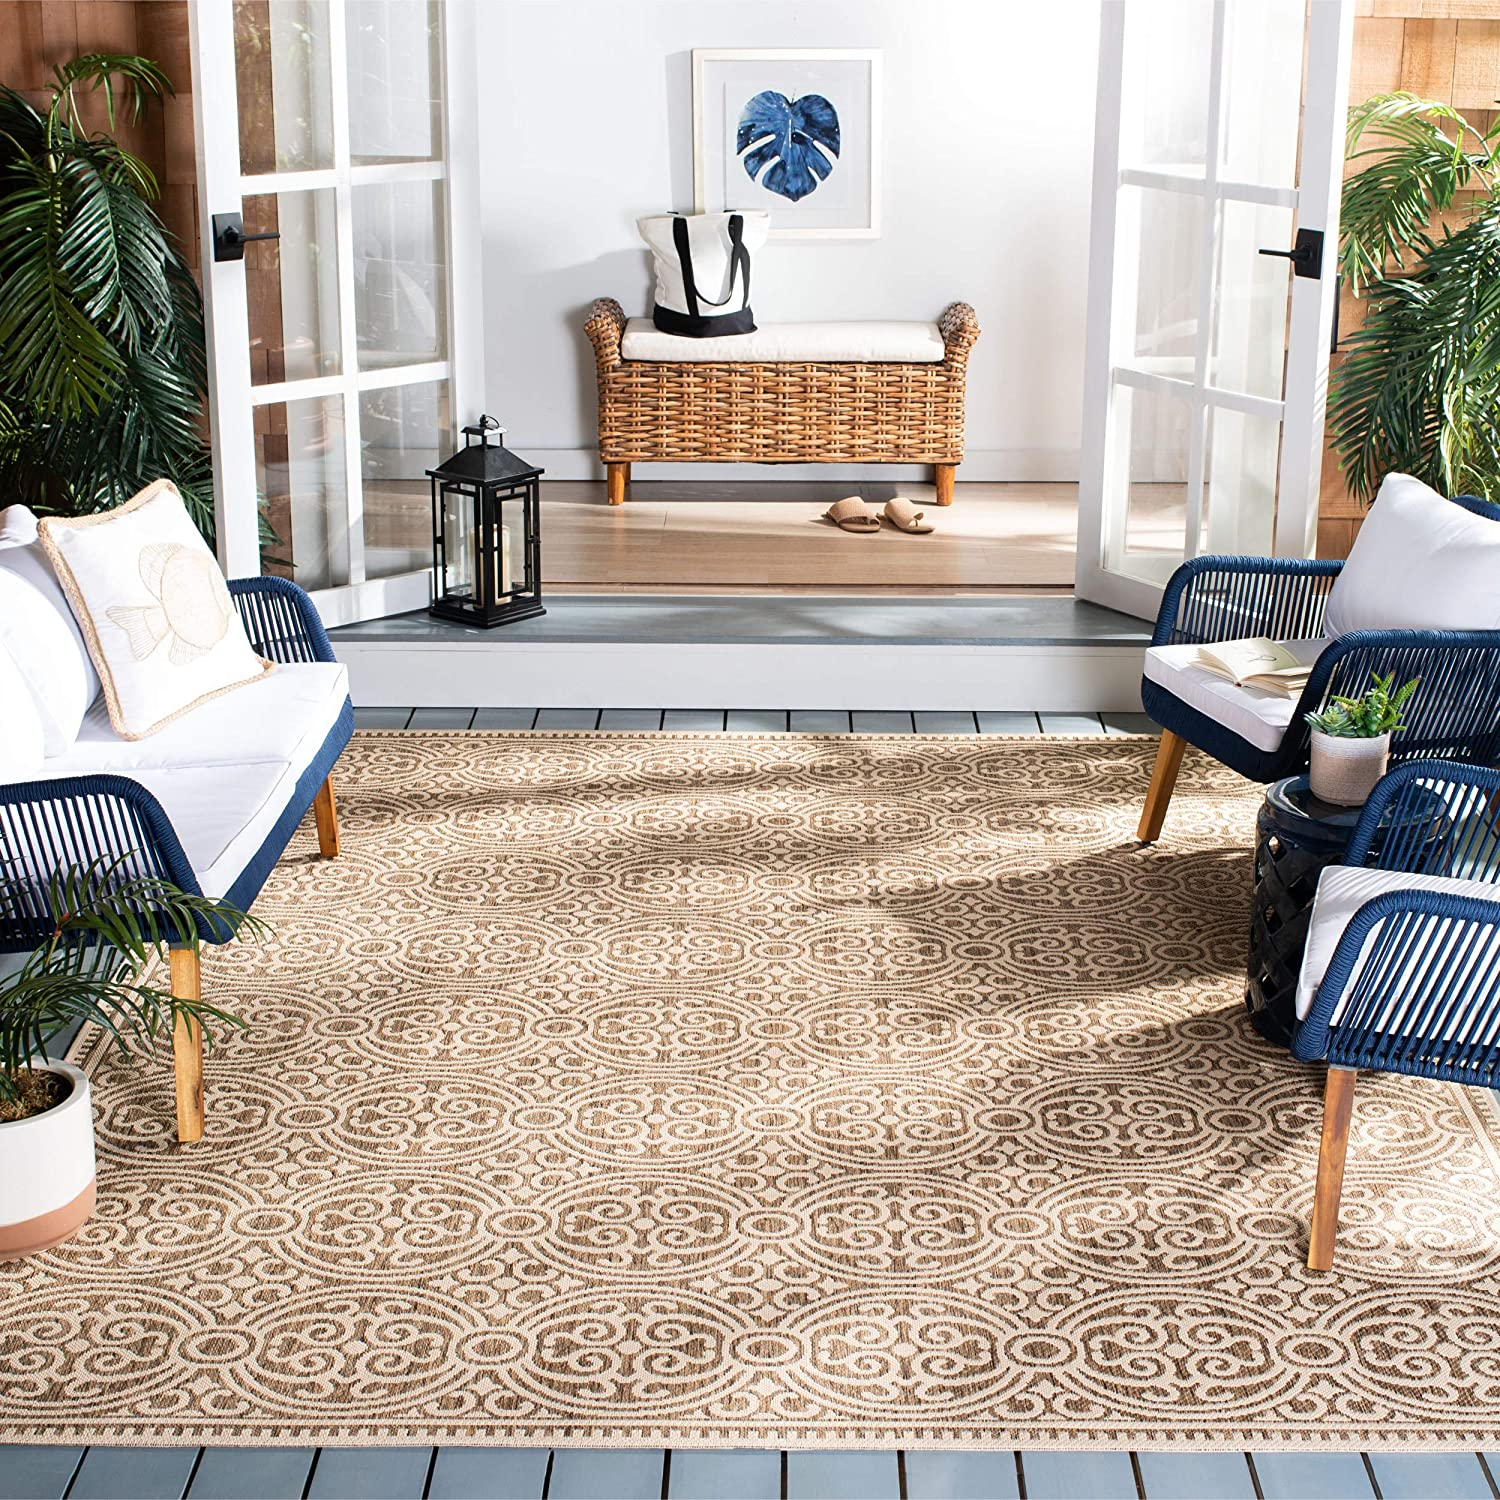 Safavieh Beach House Collection Bhs134c Indoor Outdoor Non Shedding Stain Resistant Patio Backyard Area Rug 4 X 6 Cream Beige Furniture Decor